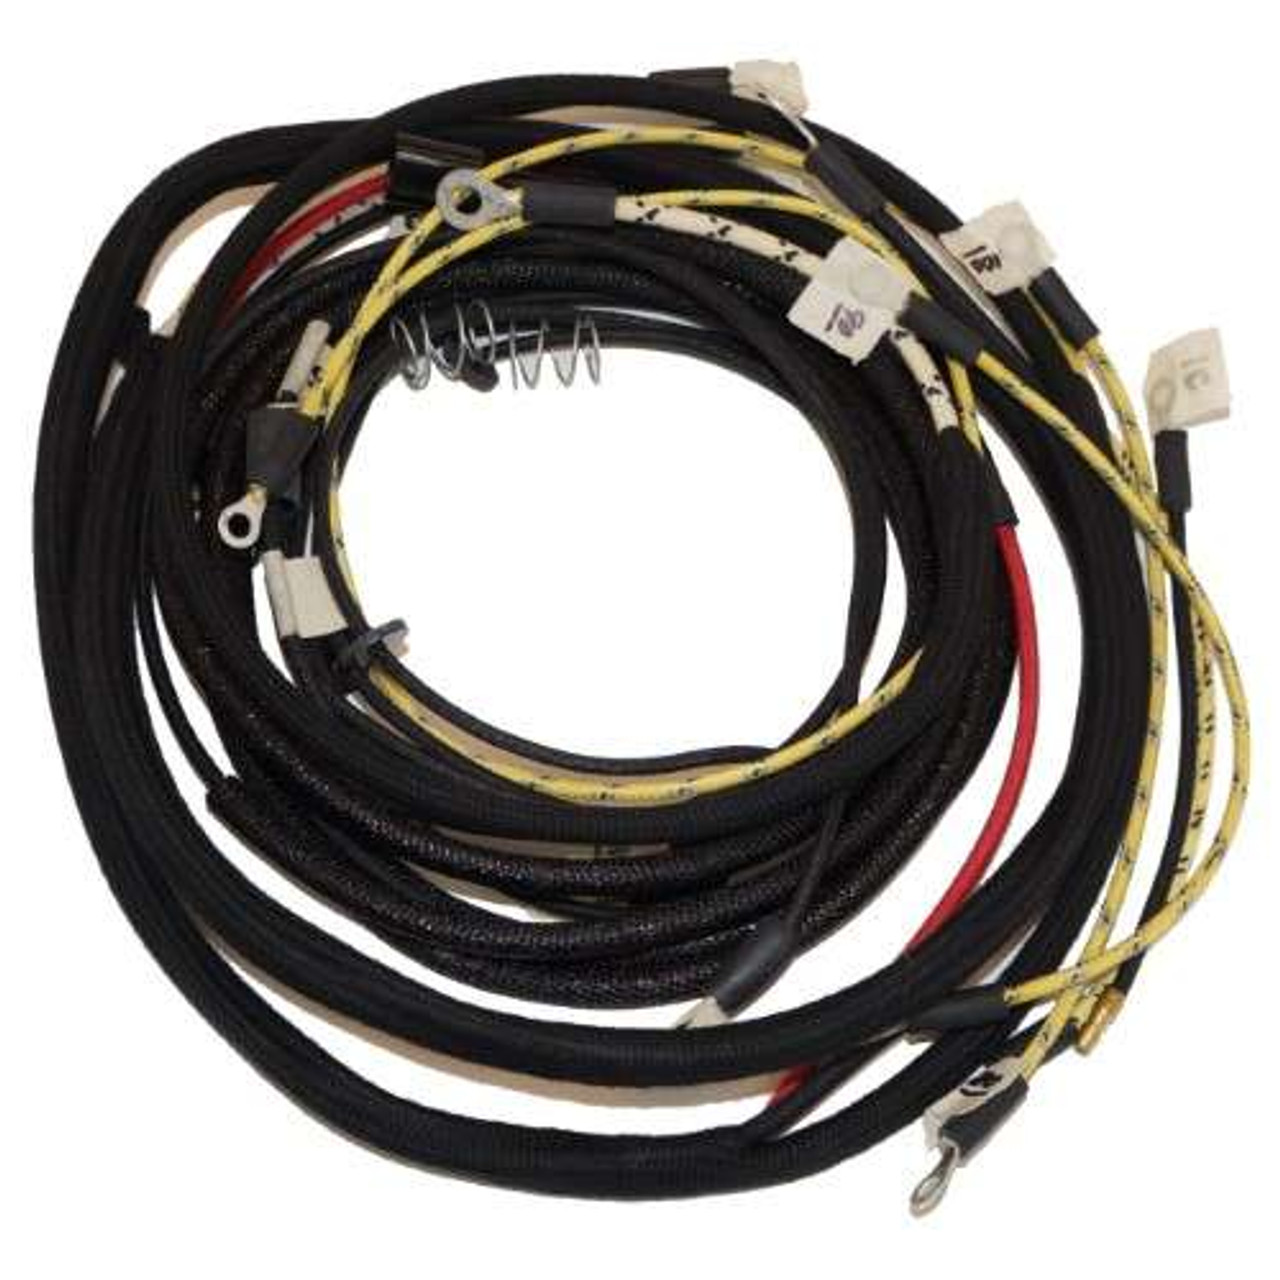 wiring harness kit tractors with 1 wire alternator allis chalmers wd wd45 djs tractor parts llc [ 1280 x 1280 Pixel ]